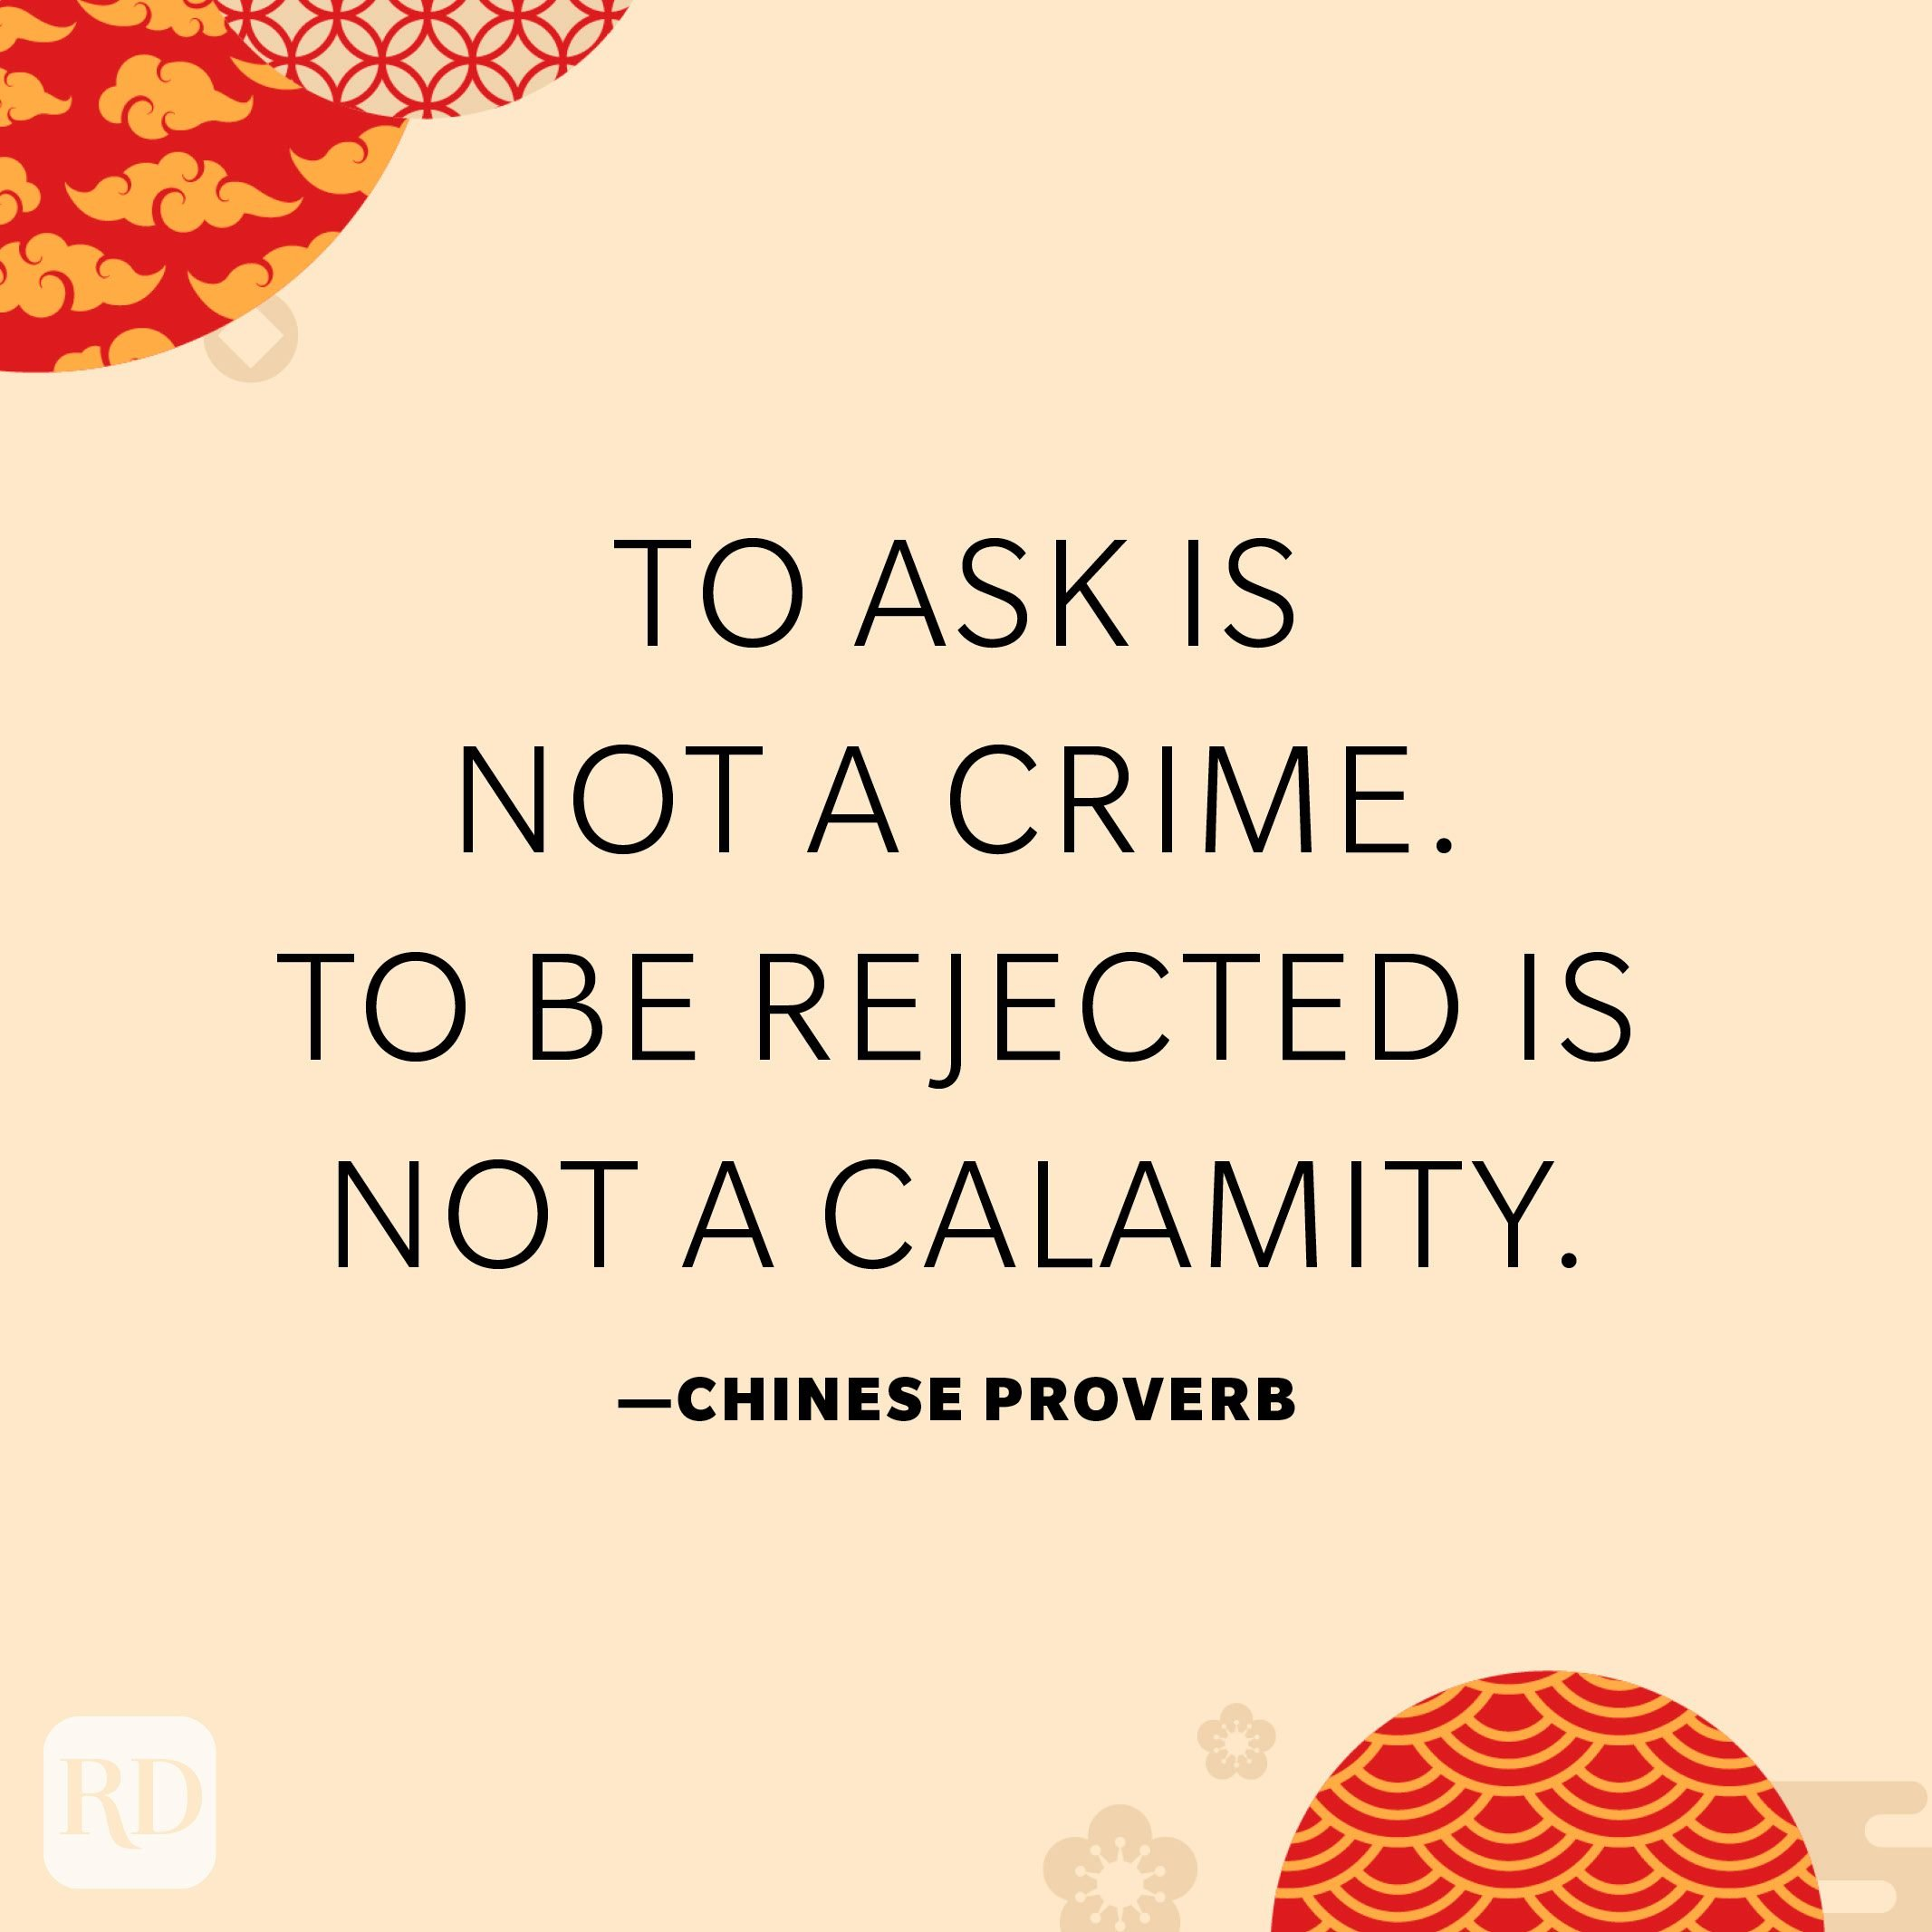 To ask is not a crime. To be rejected is not a calamity.